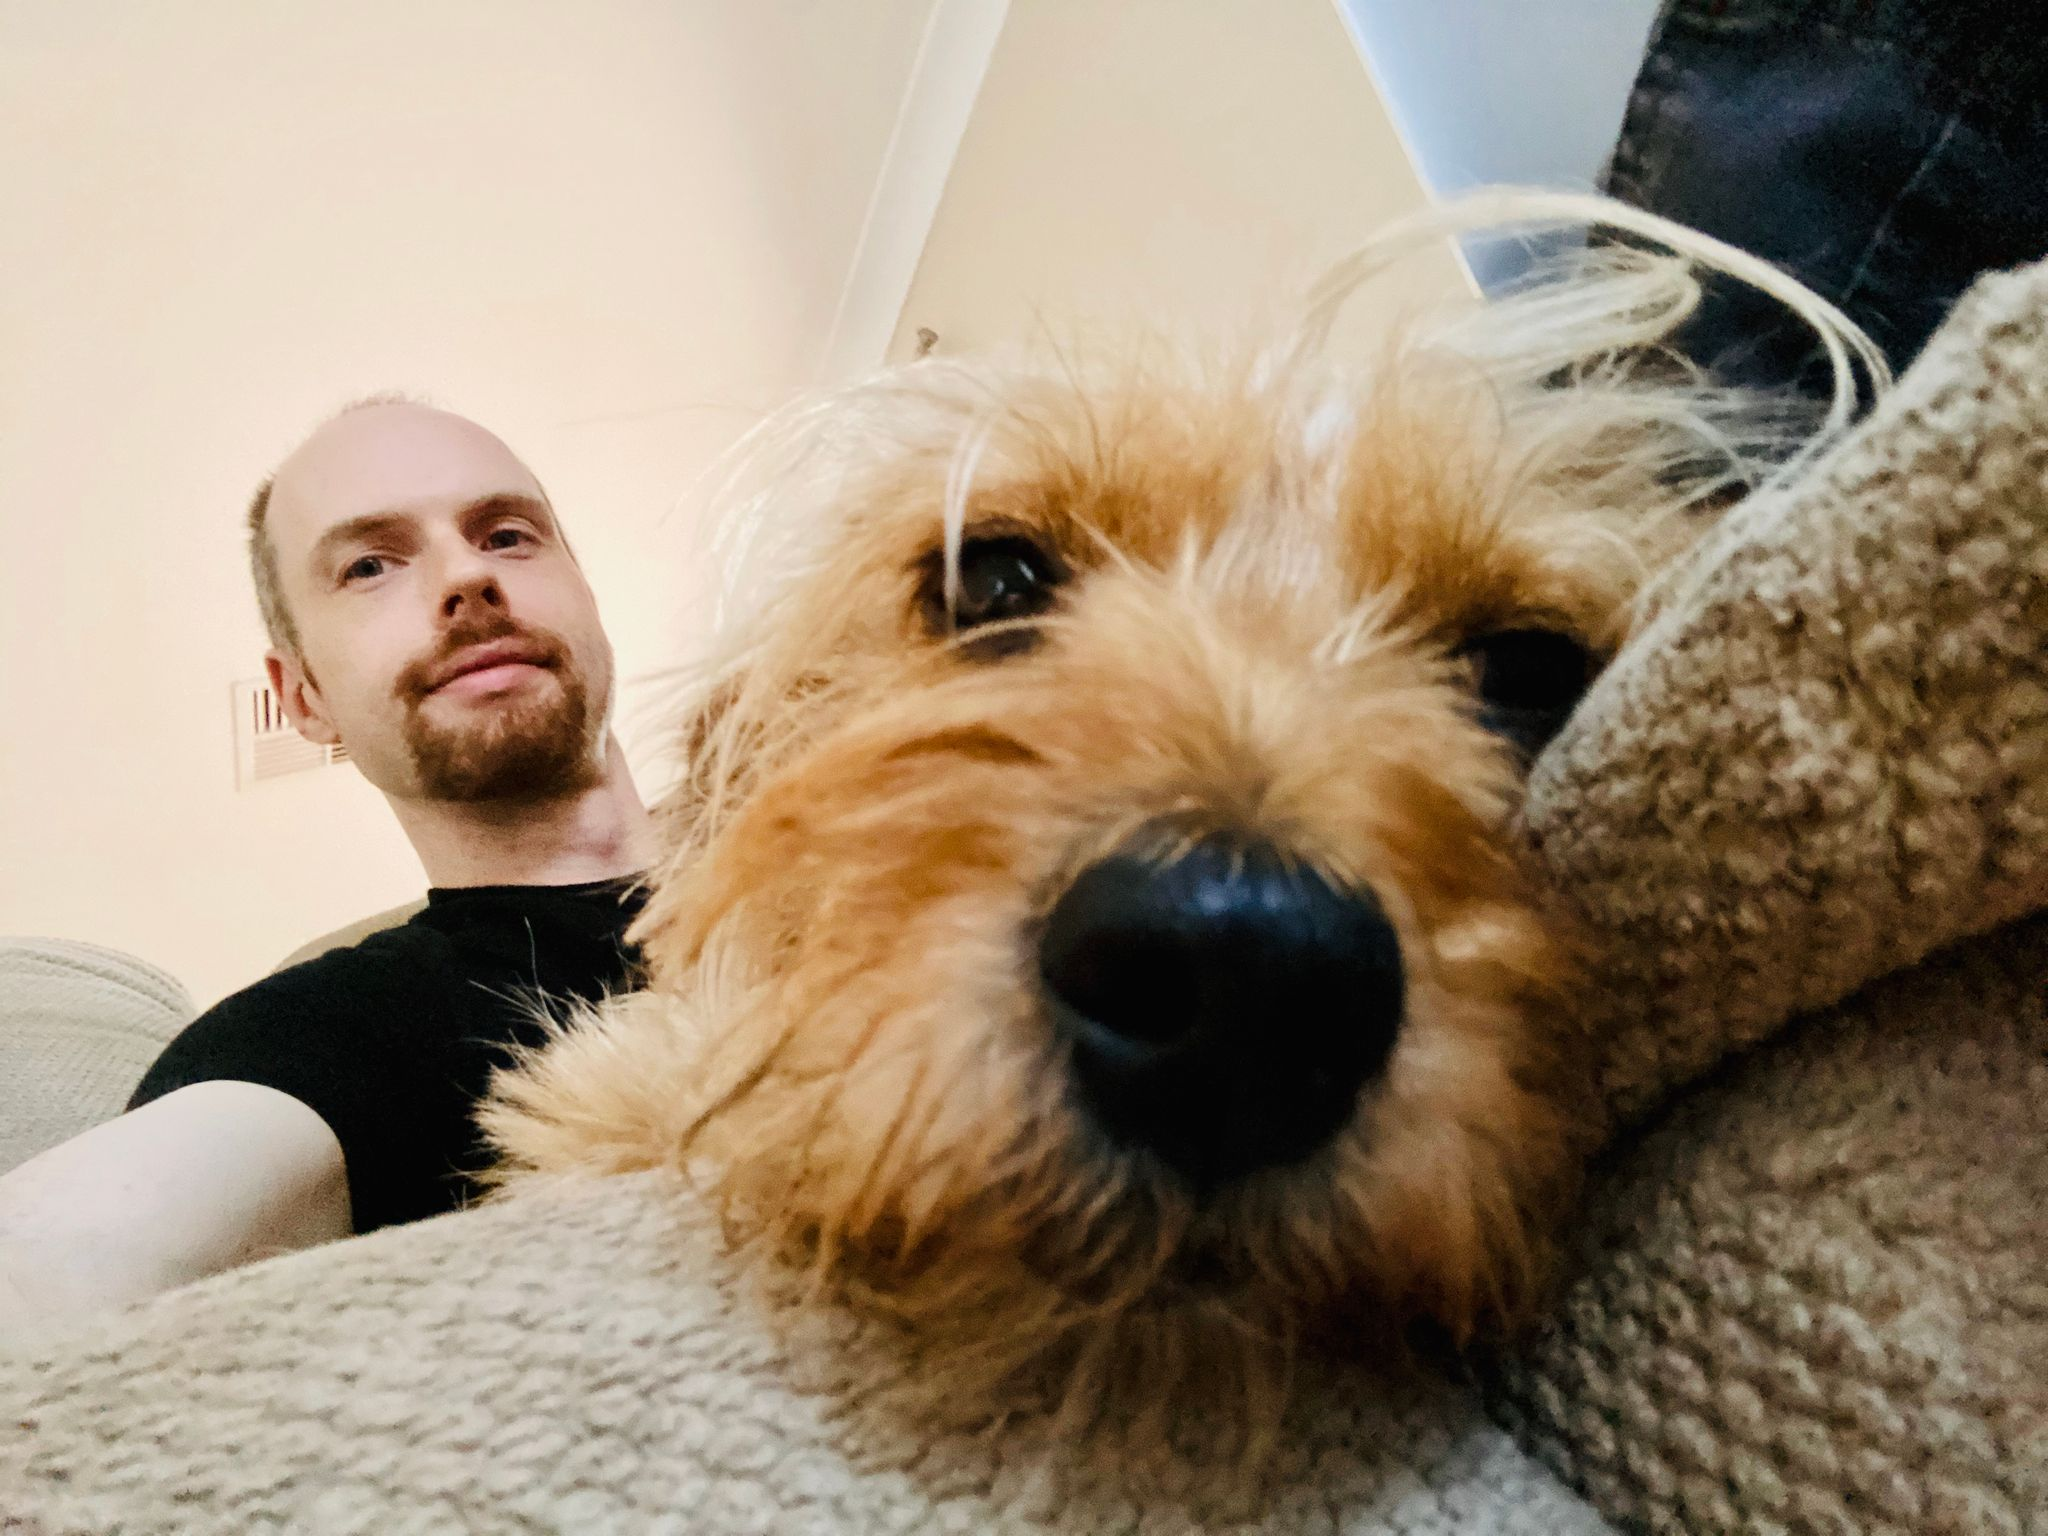 A photo taken with the front facing camera directly in front of the same dog, he's completely dishevelled and half asleep. A white man with a red goatee is visible behind the dog.